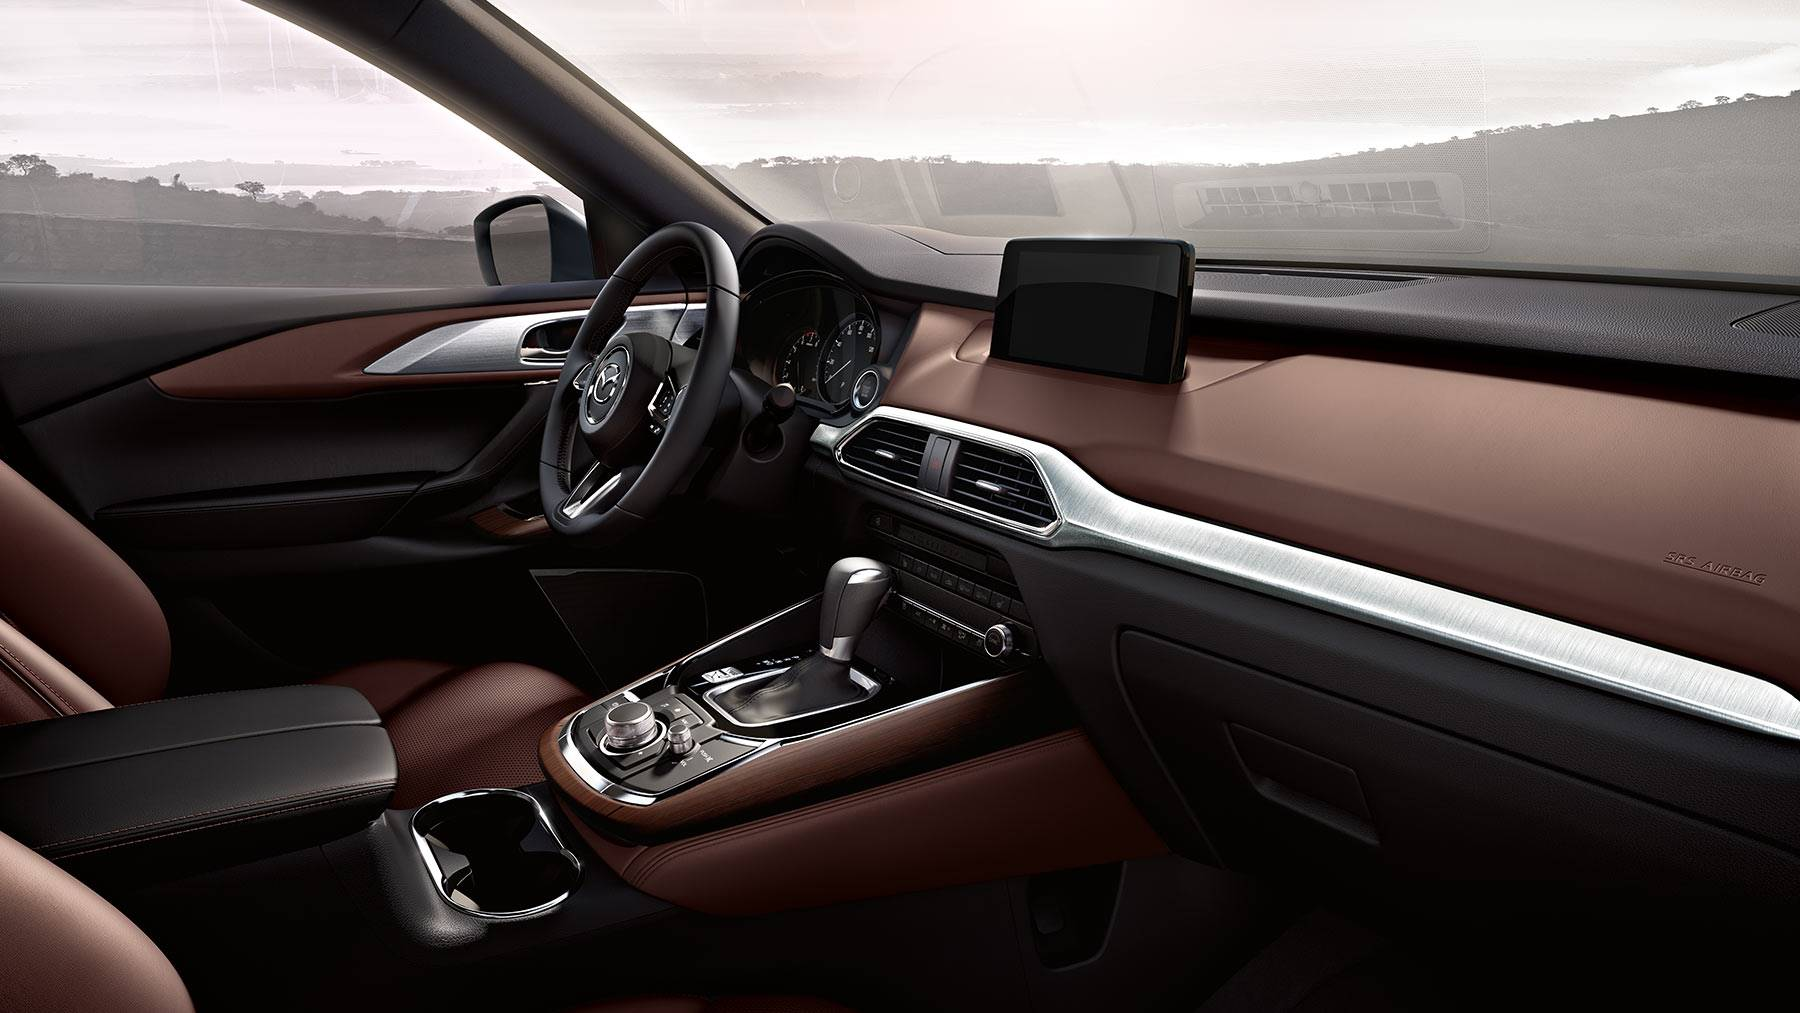 Luxurious Amenities in the Mazda CX-9